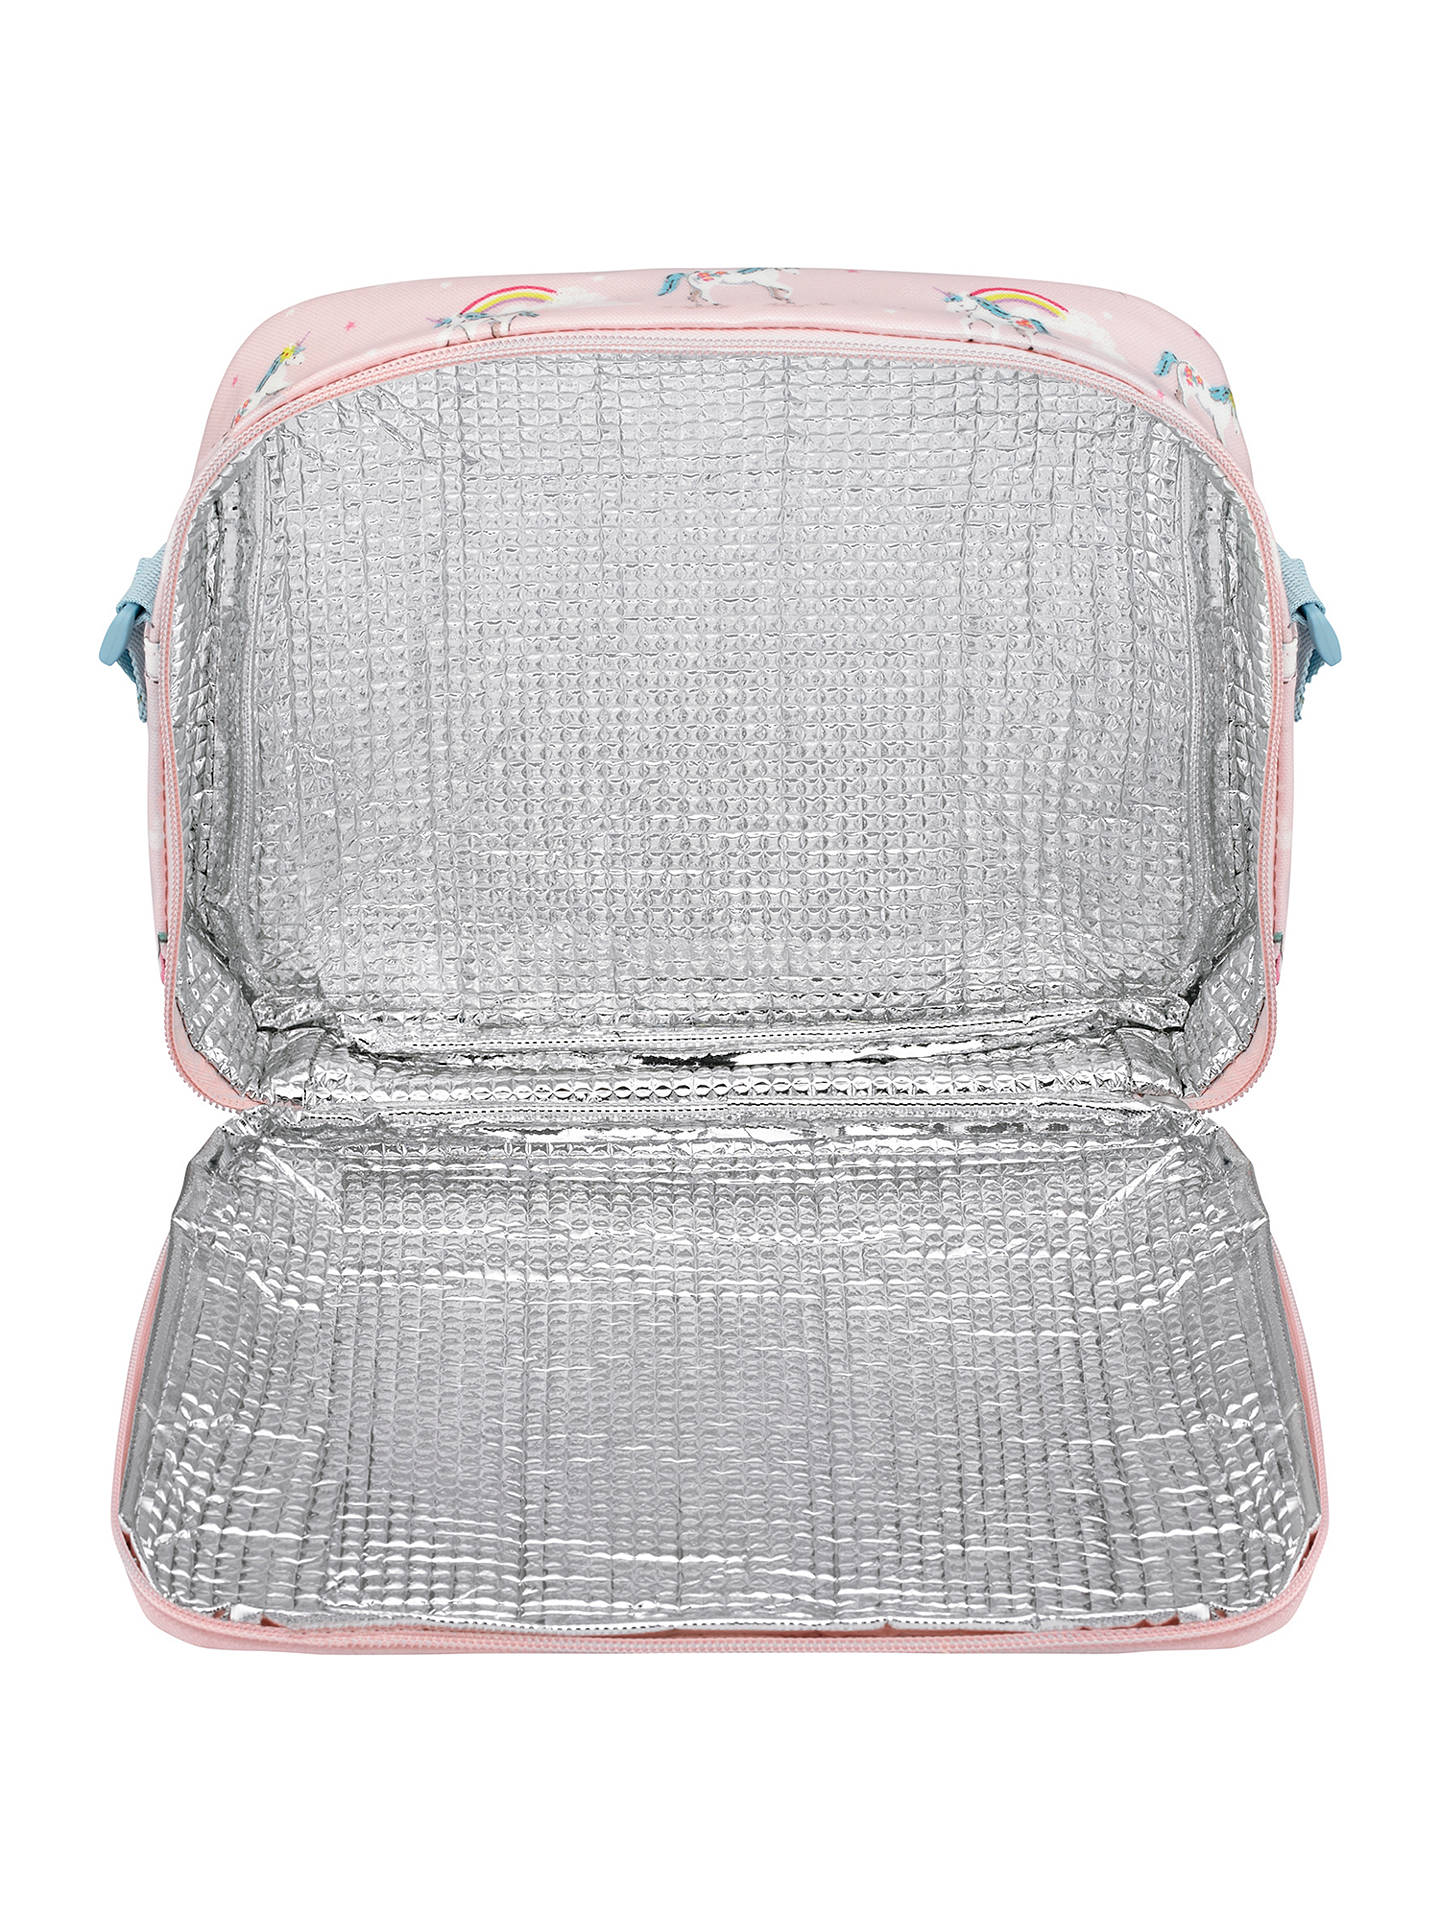 Buy Cath Kids Children's Unicorns And Rainbows Lunch Bag, Pink Online at johnlewis.com